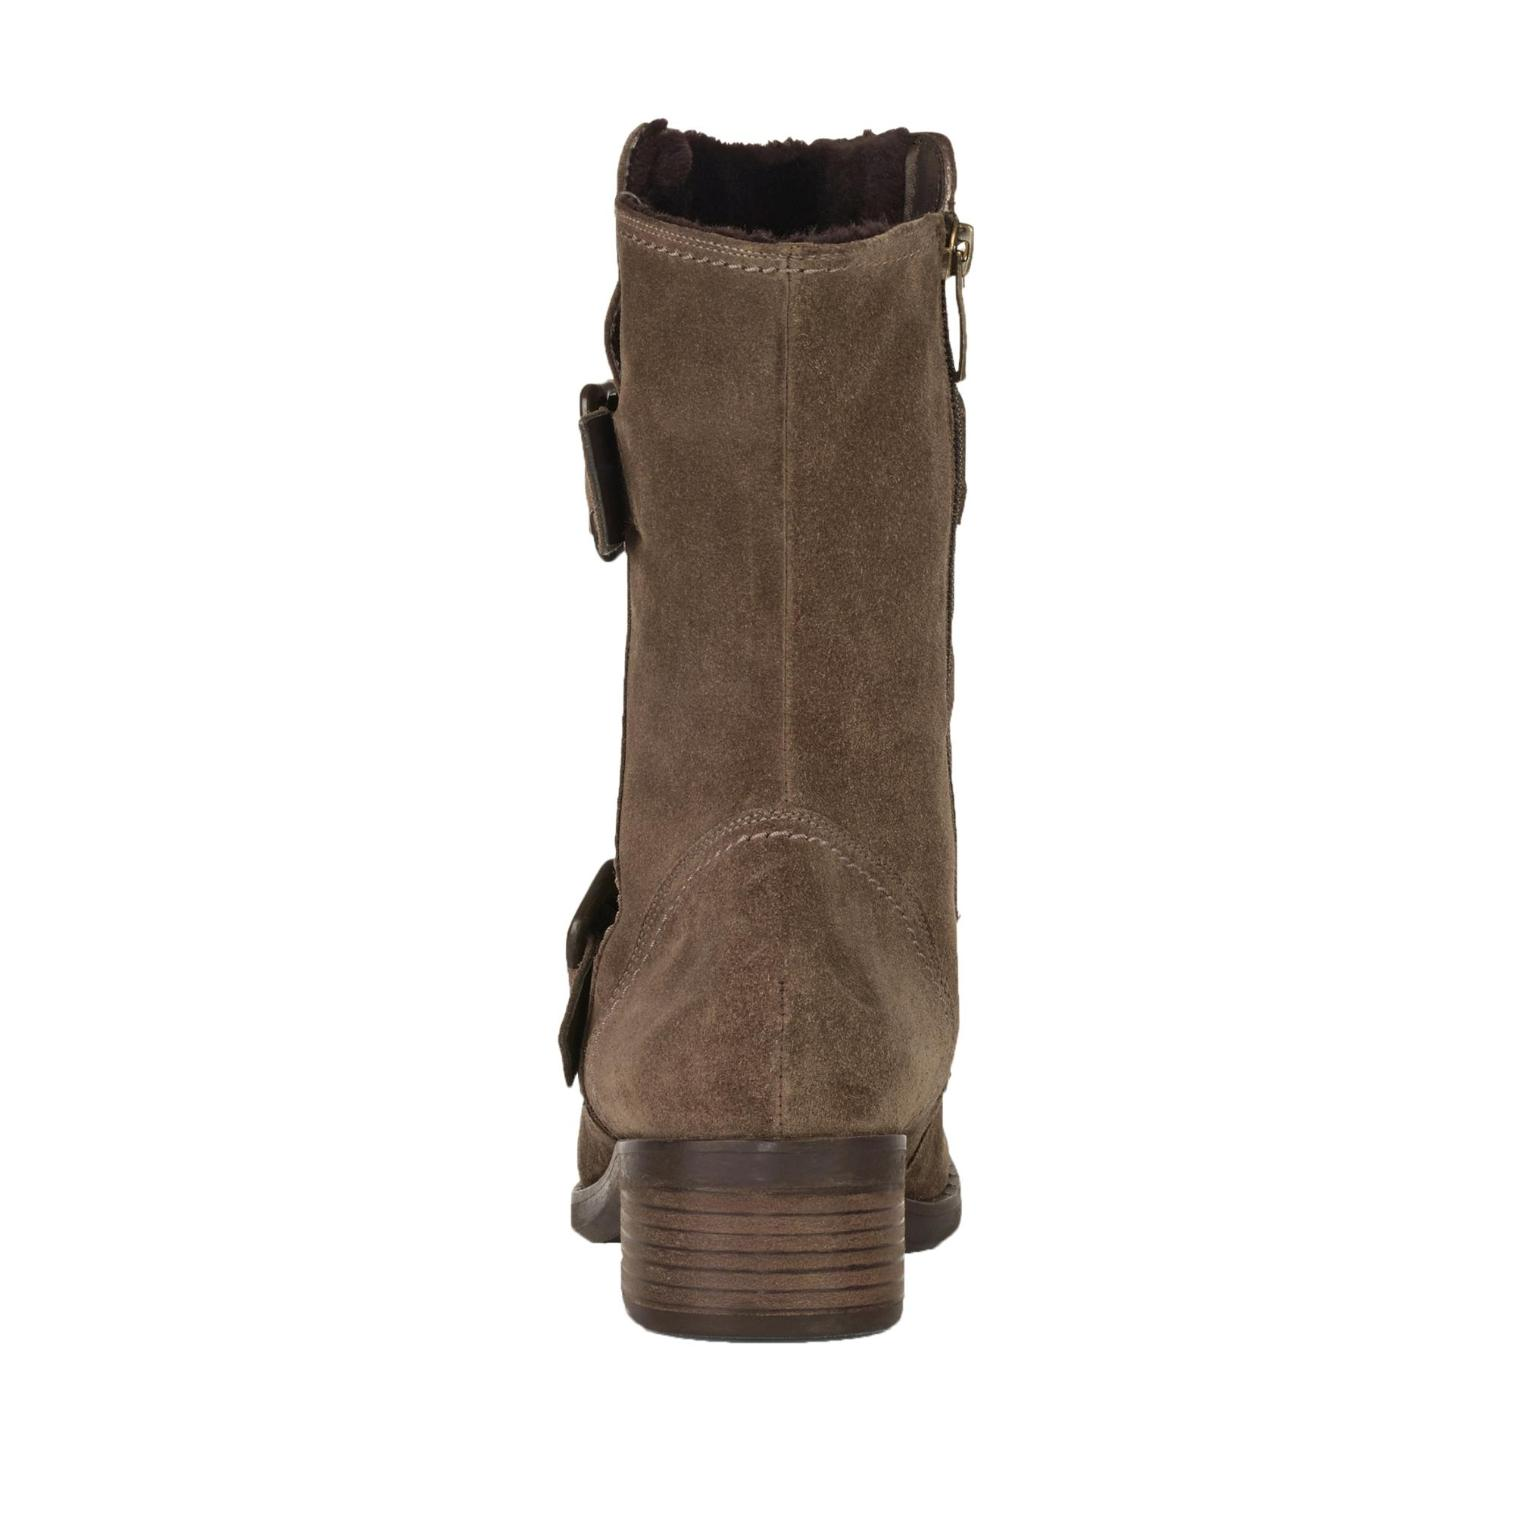 Paul Green Boots in Farbe 14% taupe um 14% Farbe reduziert online kaufen de25dc